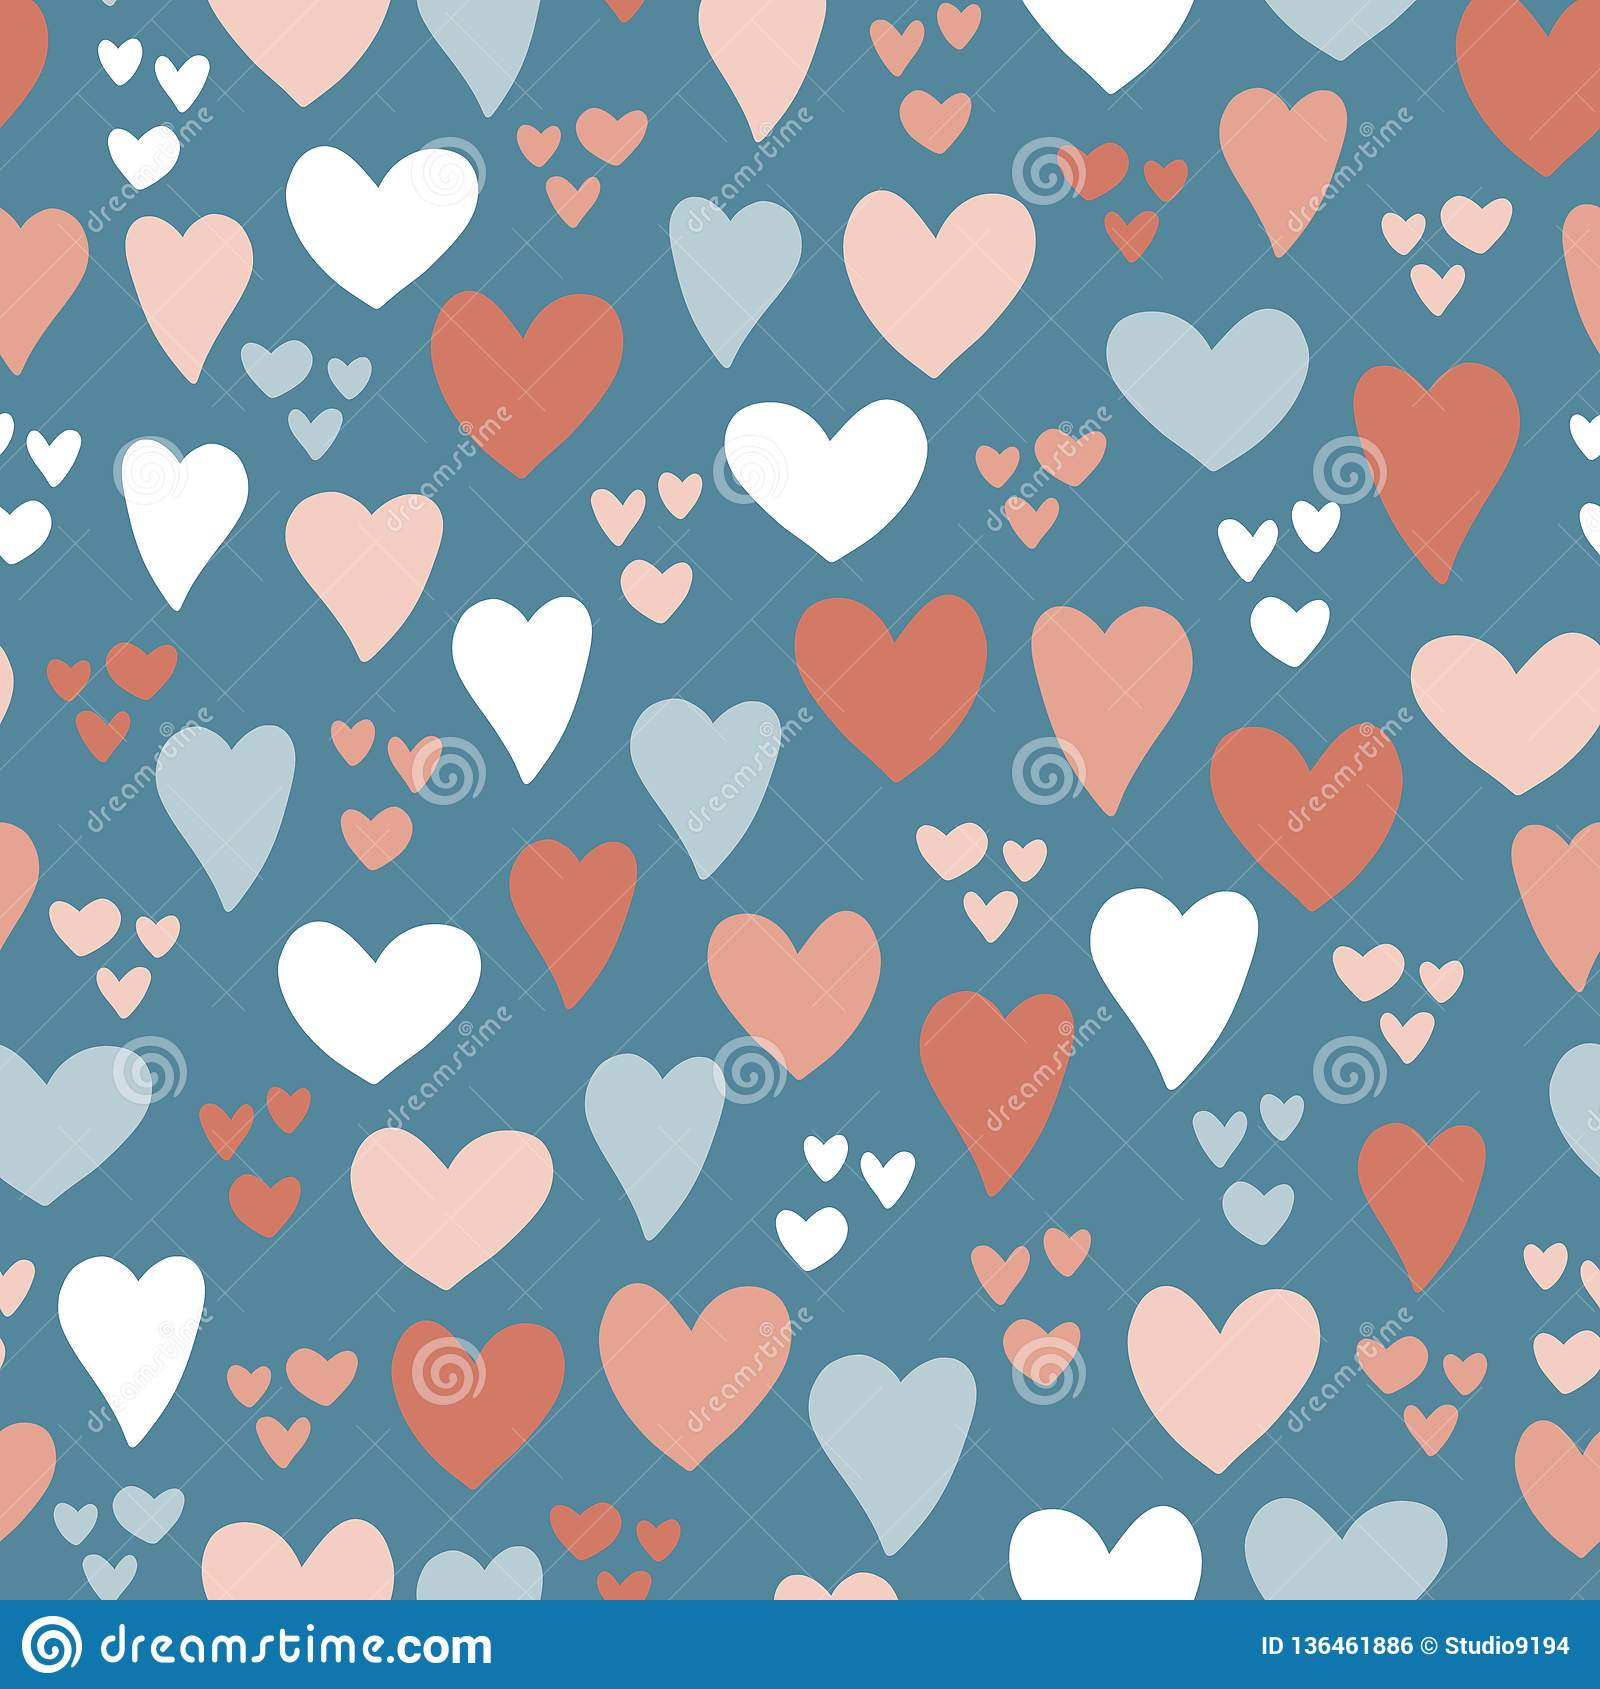 Hearts seamless vector pattern background. Hand drawn hearts isolated pink, coral, blue. Use for card, invitation, album,